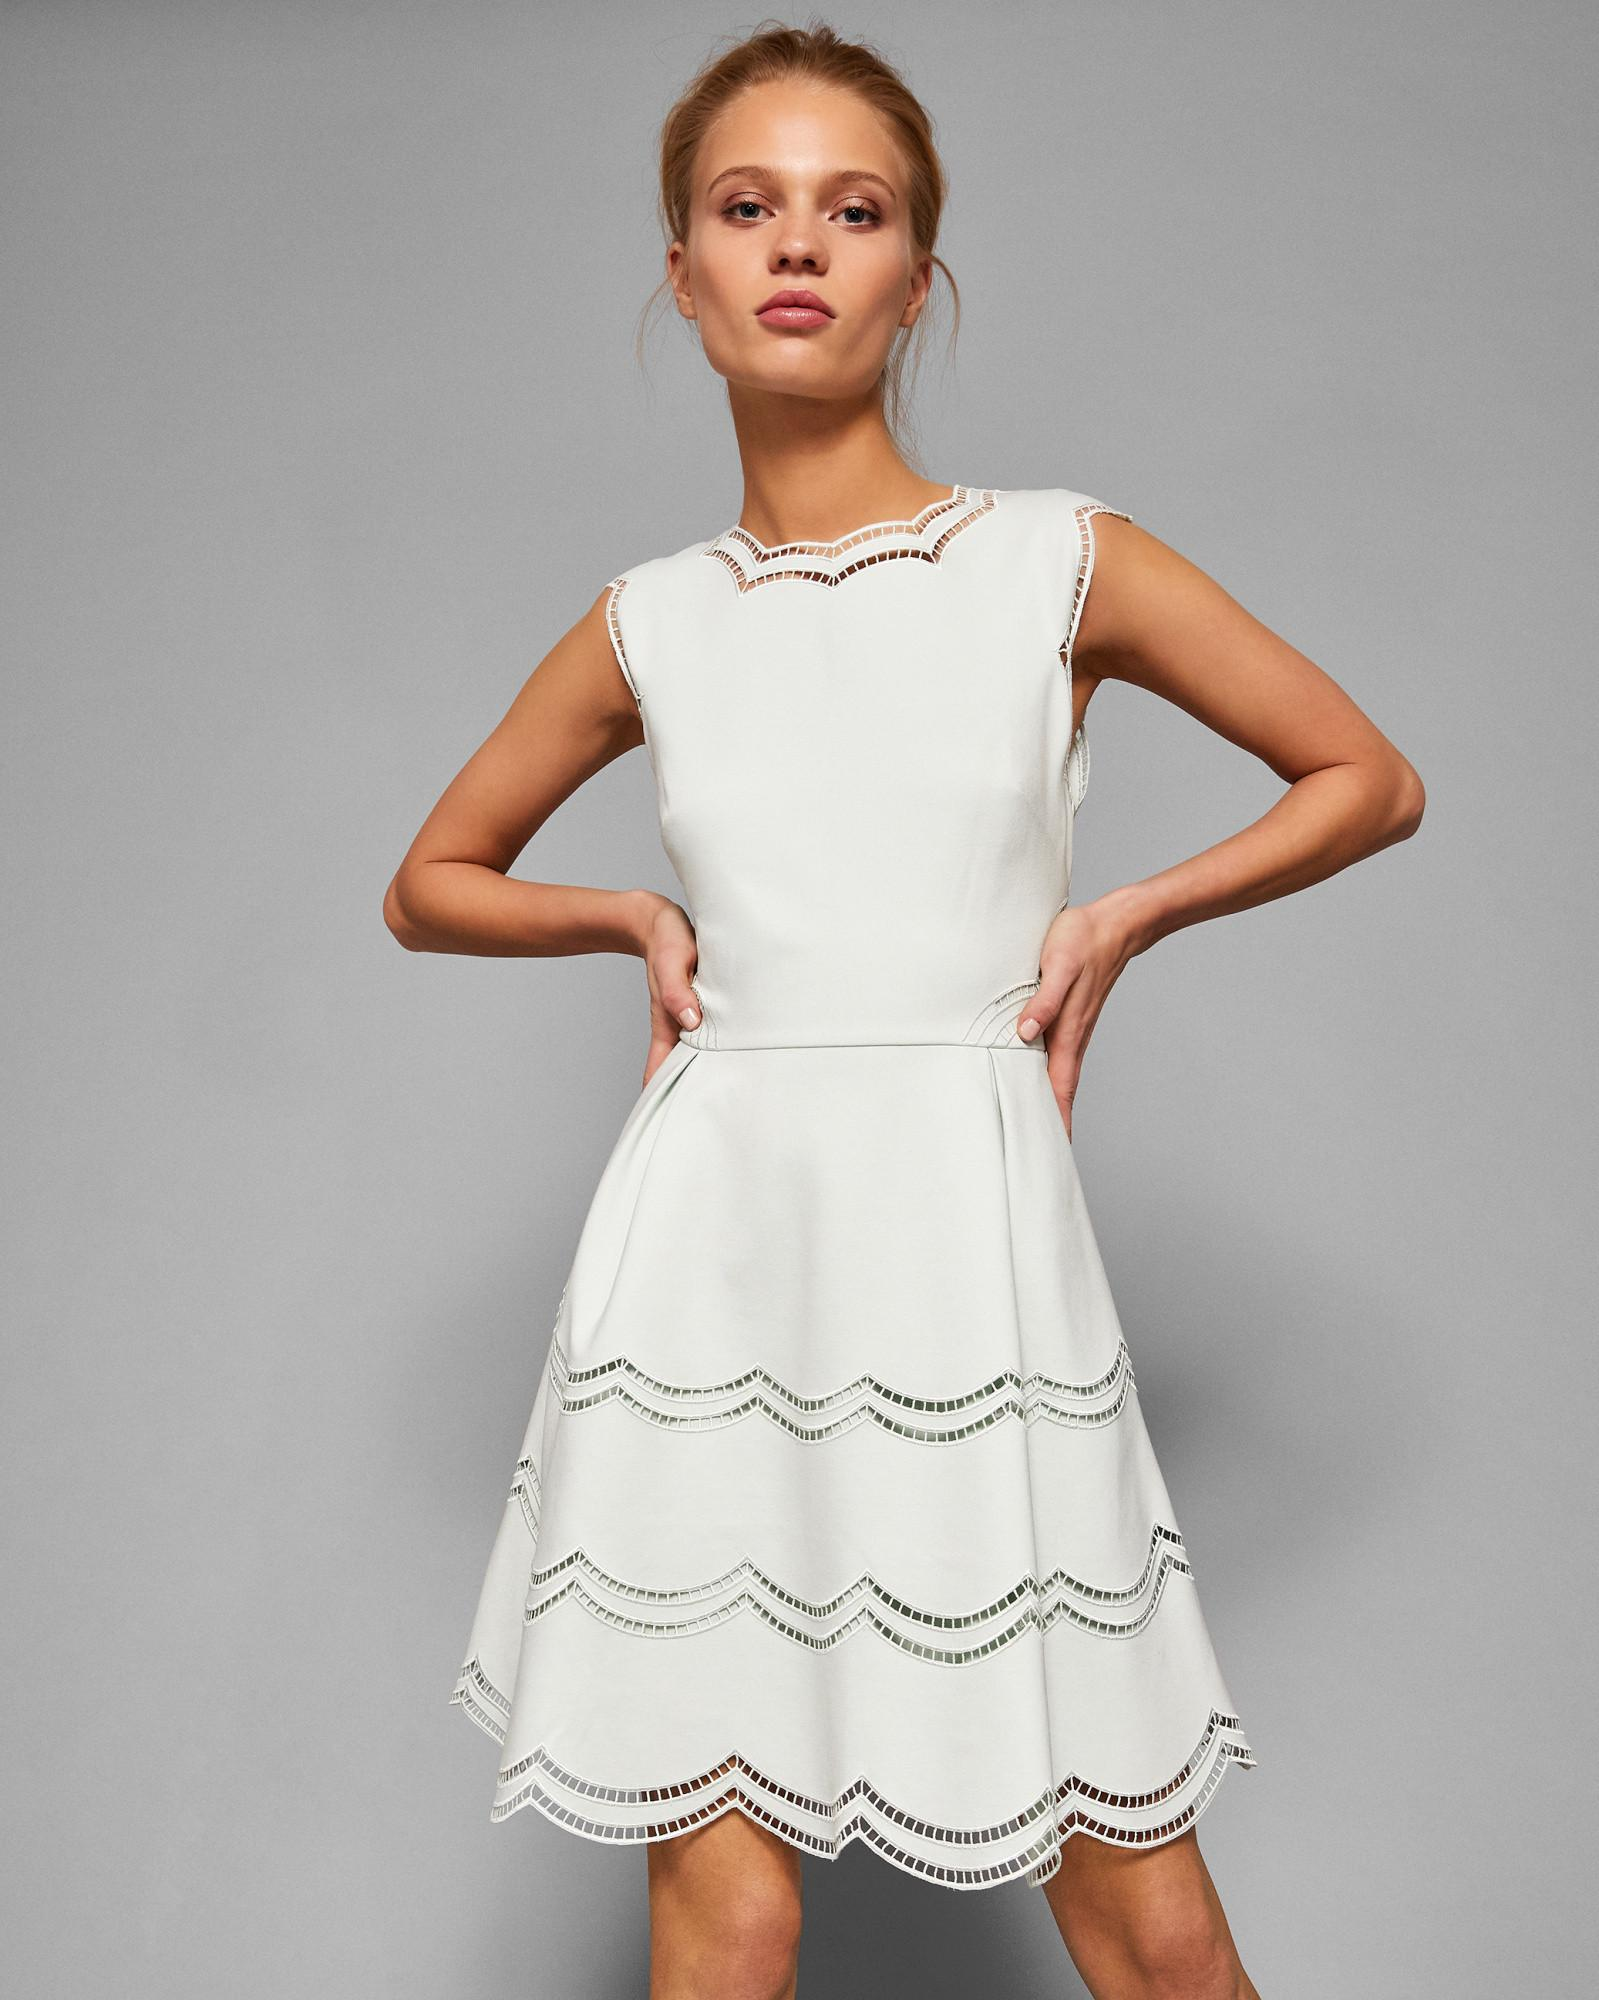 a88abf0721 Ted Baker Embroidered Scallop Detail Skater Dress in White - Lyst